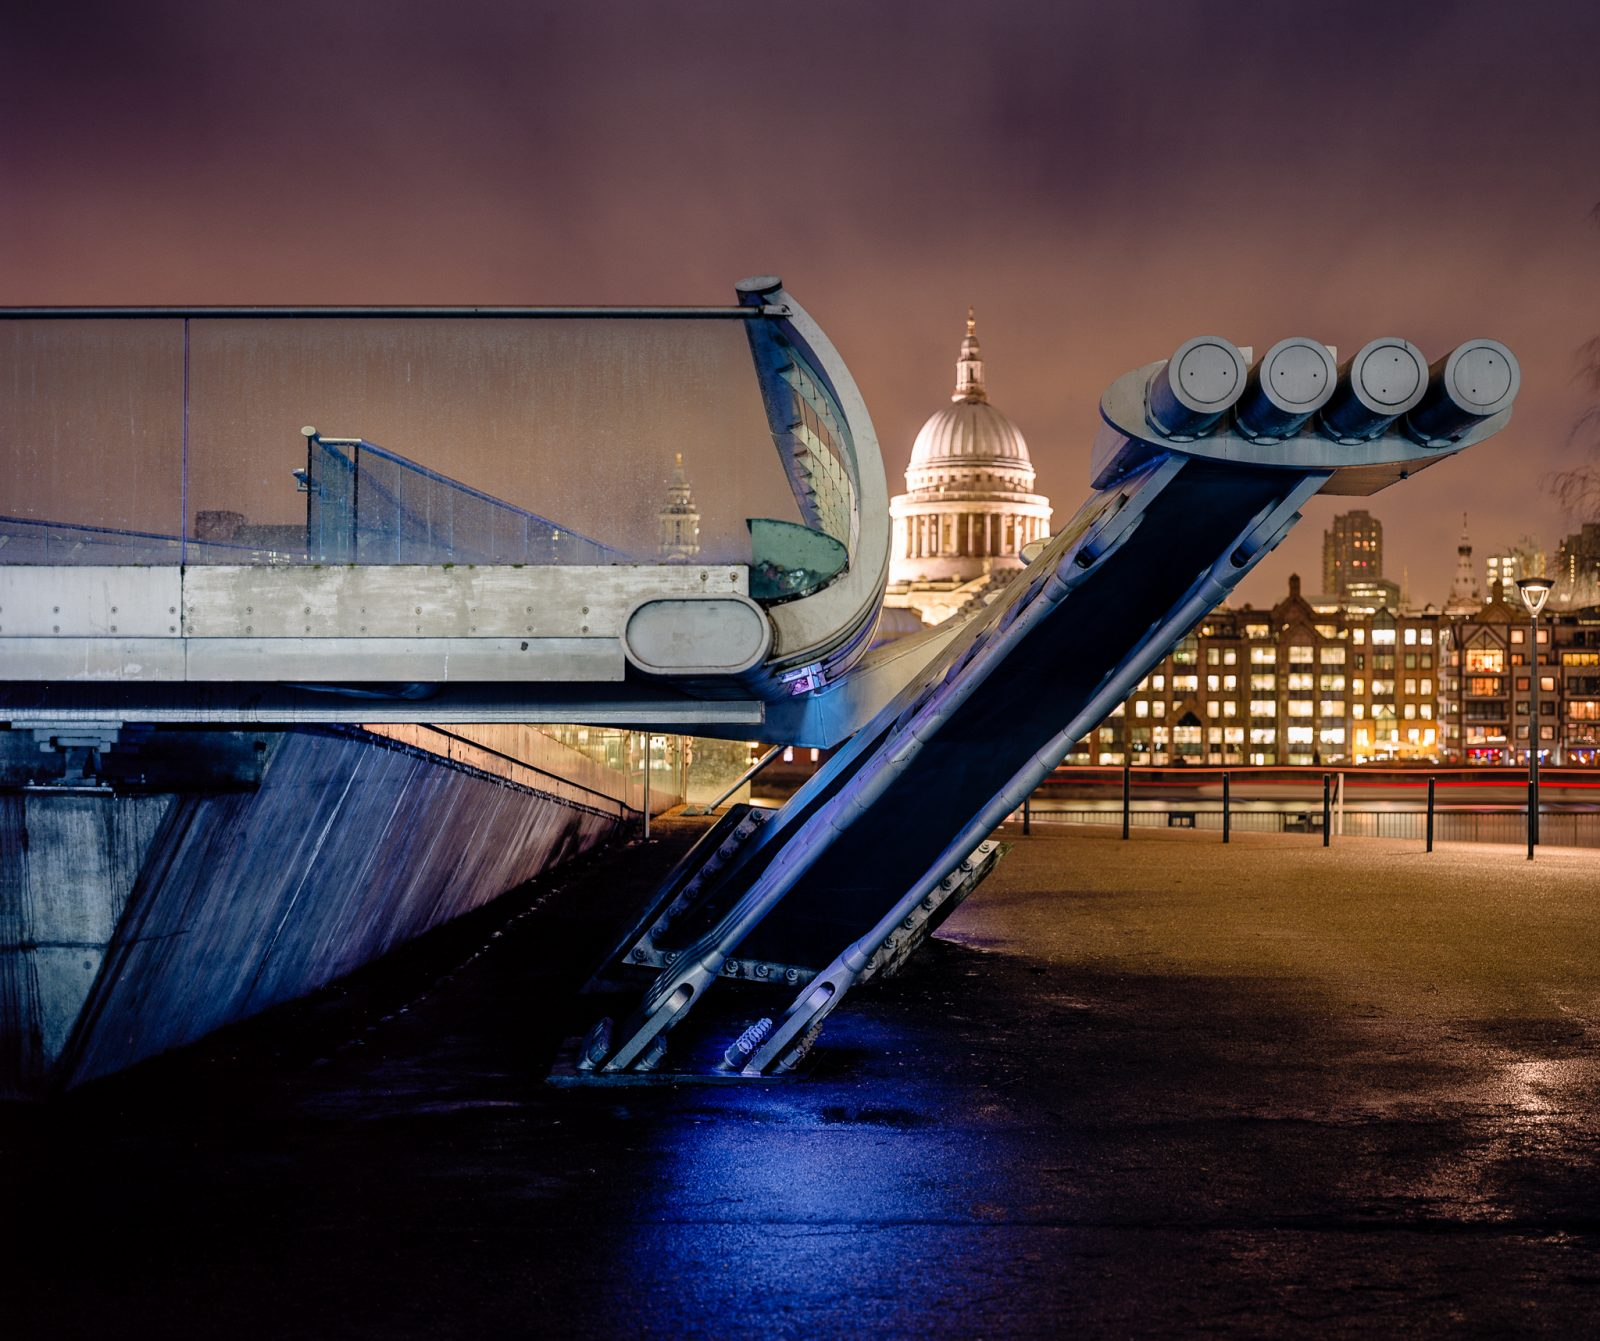 A Bridge to St Pauls